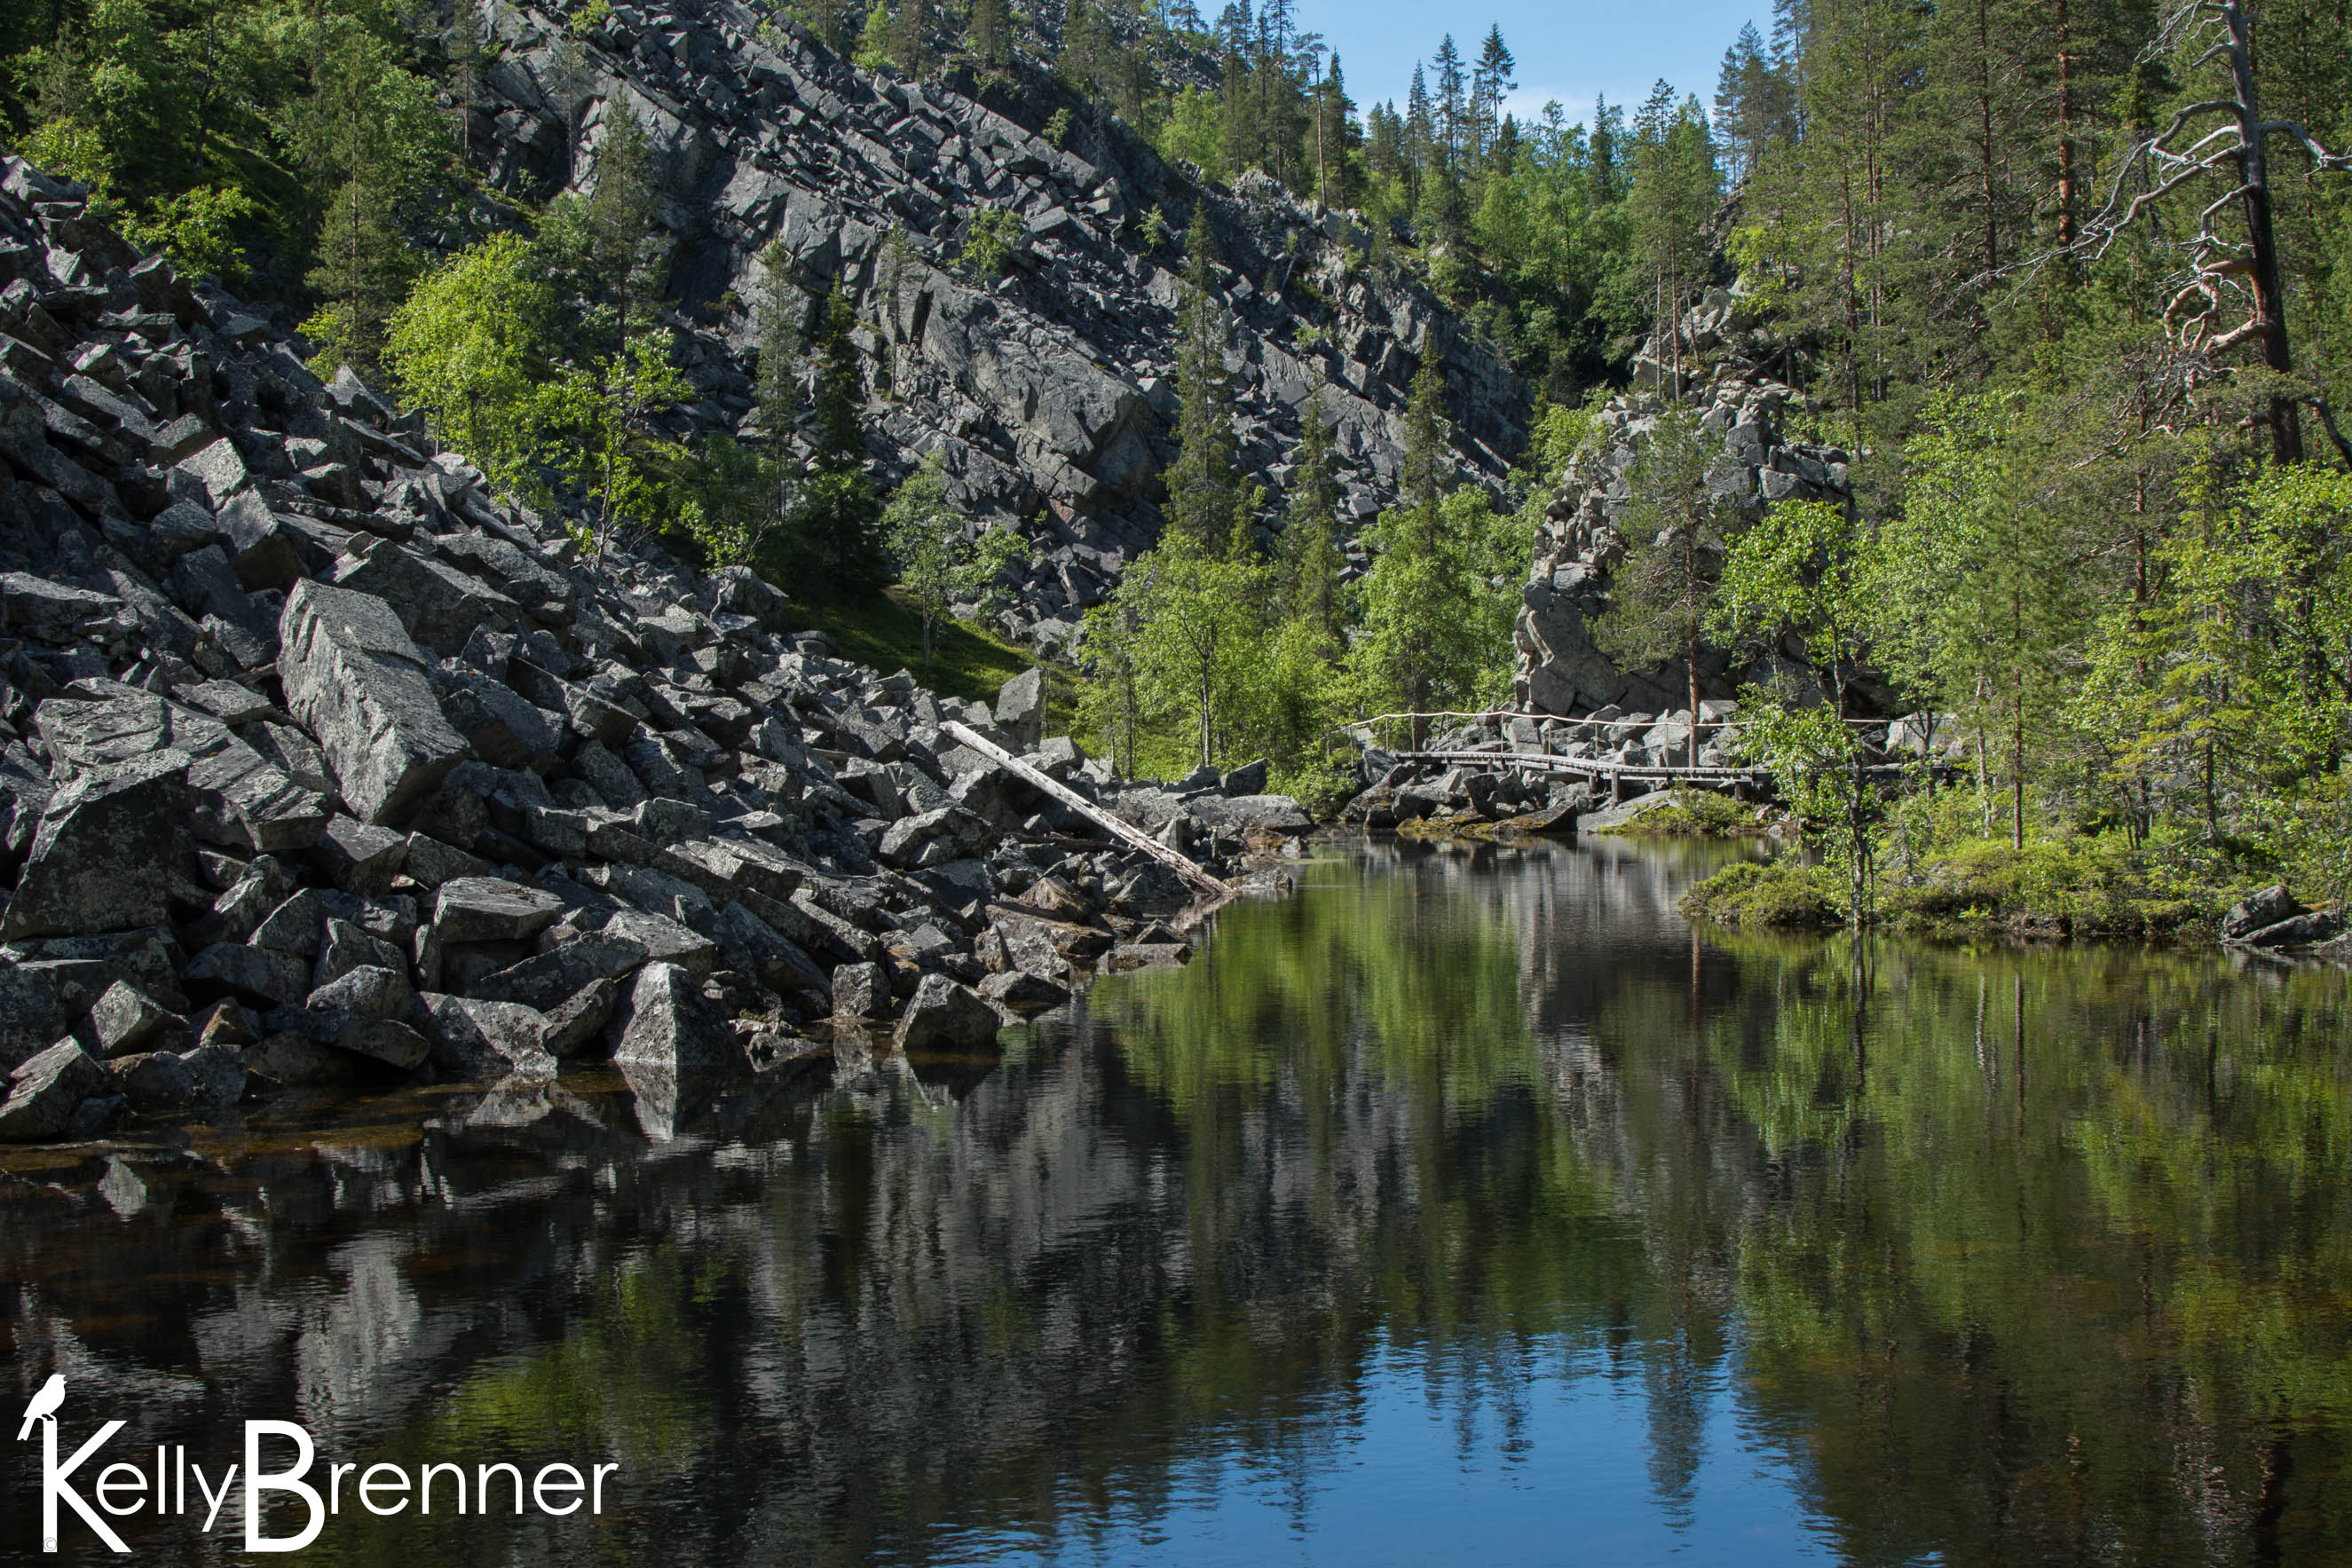 Field Journal: Pyhä-Luosto National Park – Part 2